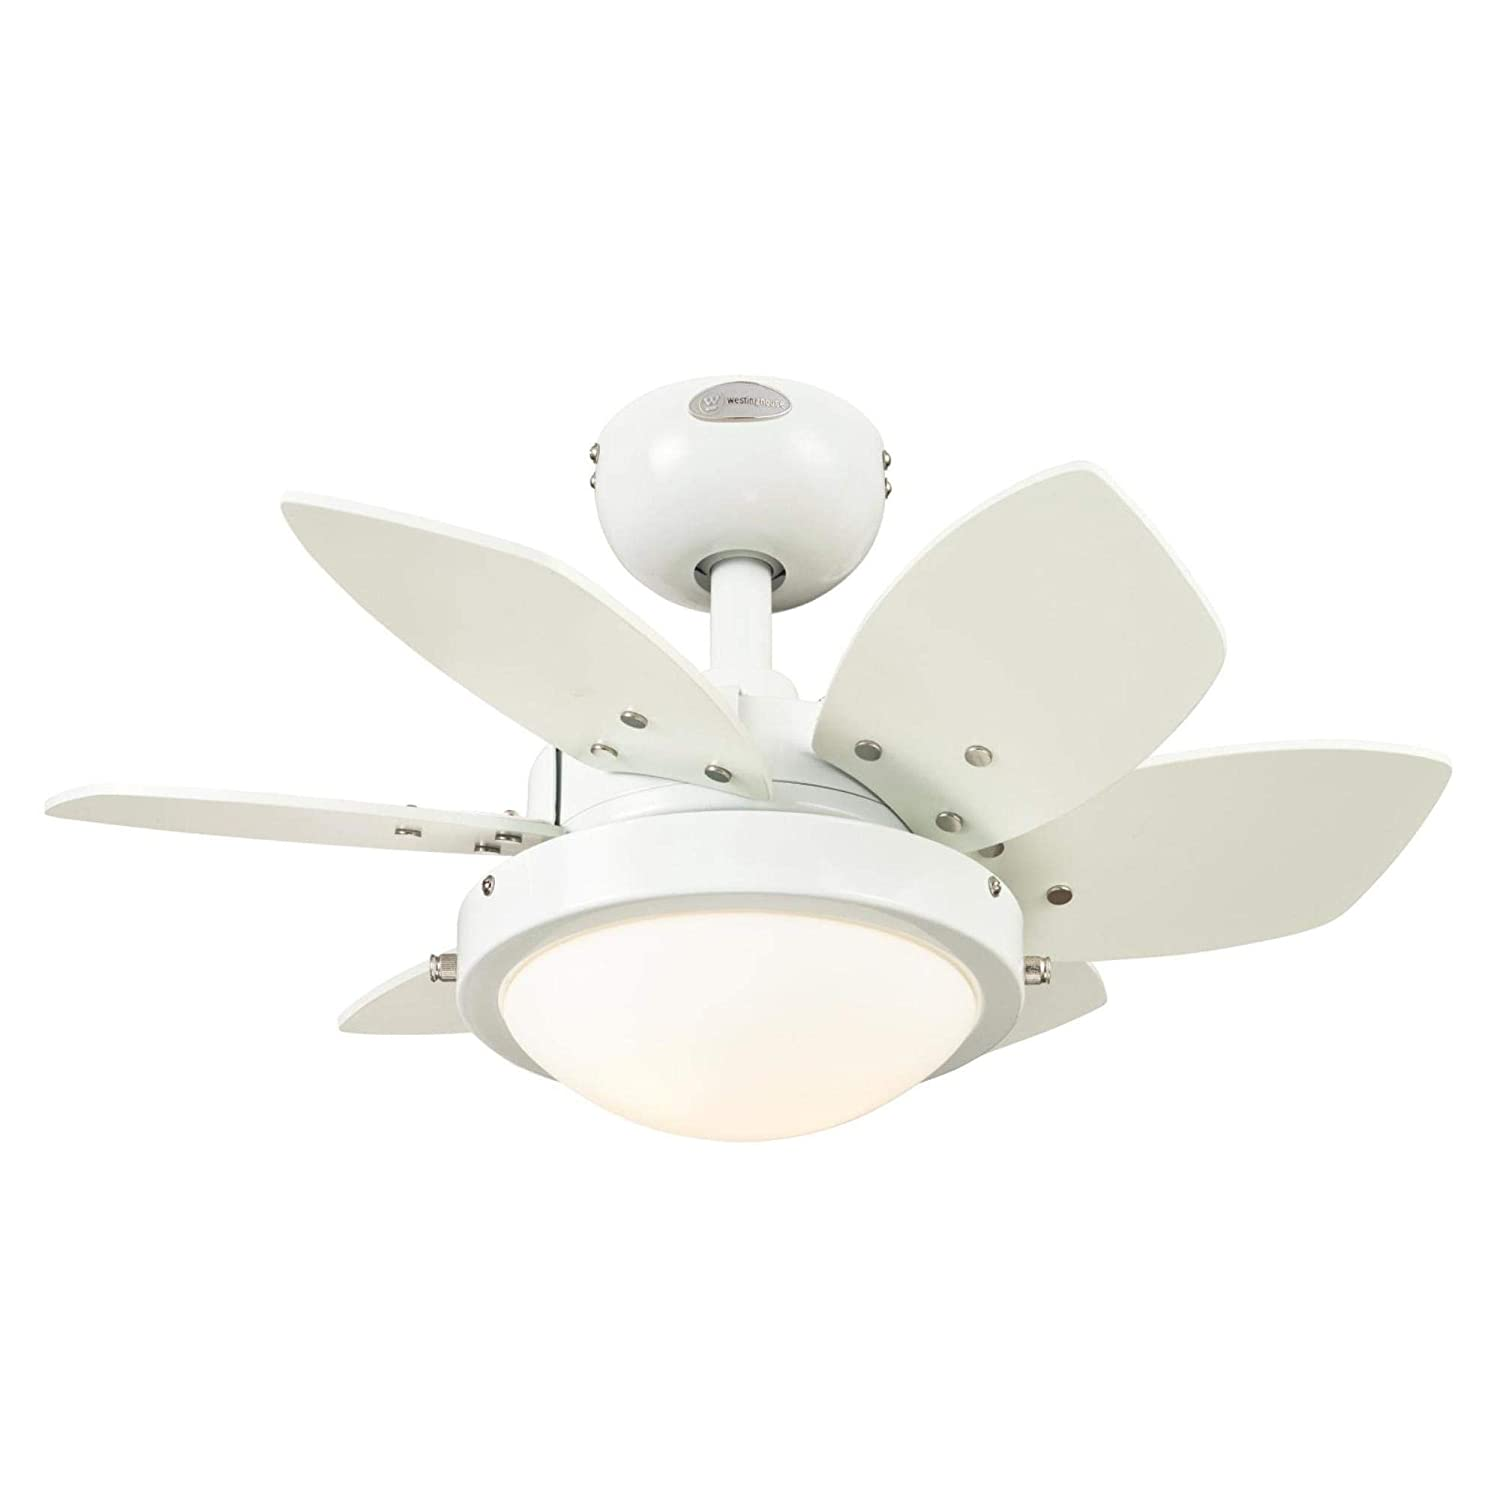 Westinghouse Lighting 7224700 Quince LED Ceiling Fan with Light, 24 Inch, White